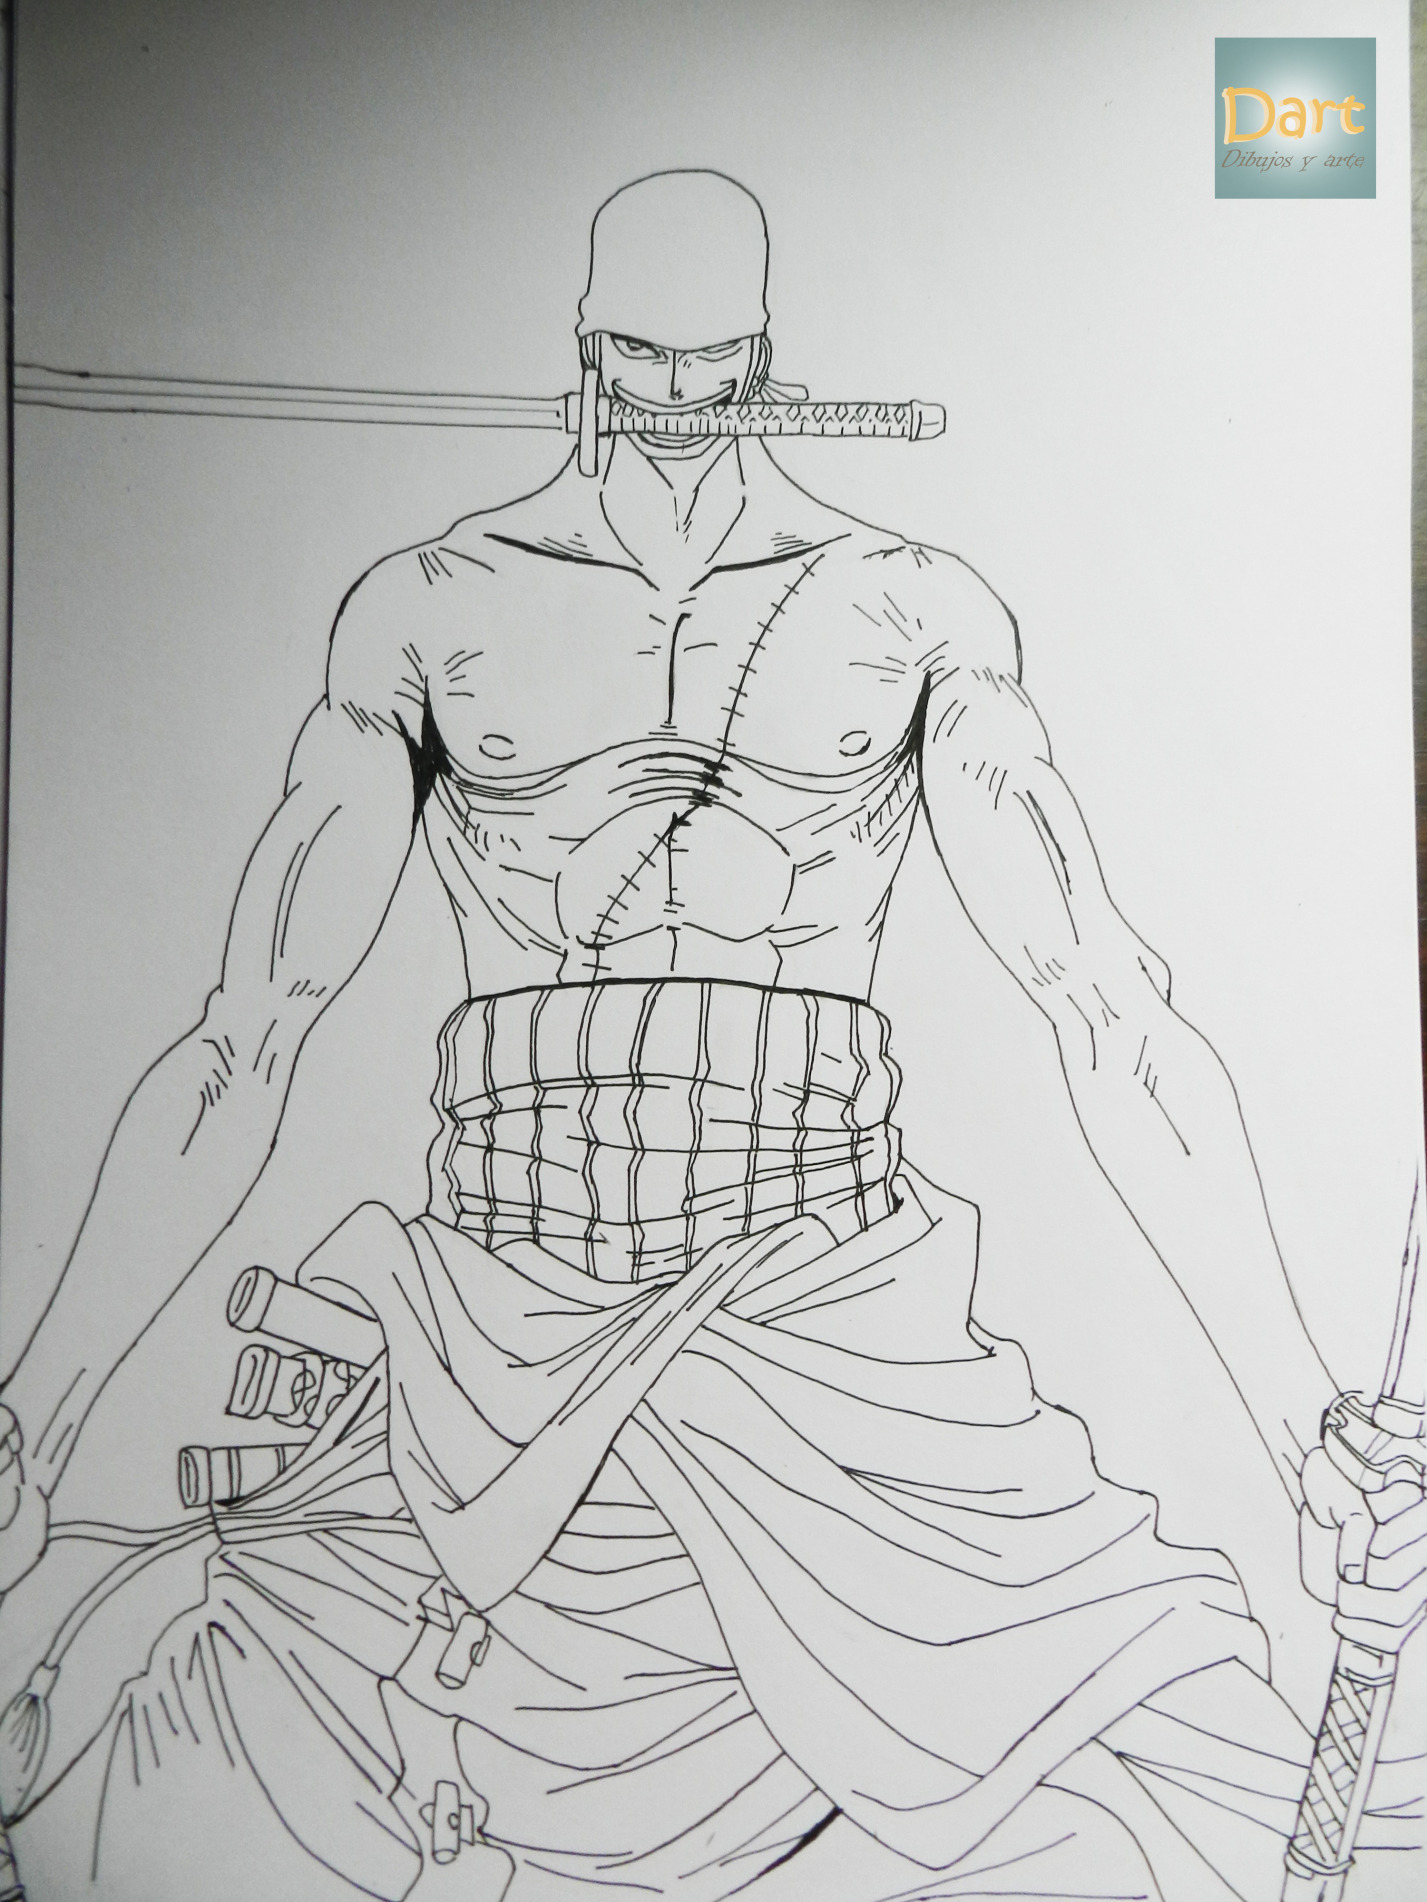 One Piece Dibujos Of Dibujando A Roronoa Zoro One Piece Dibujos Y Arte